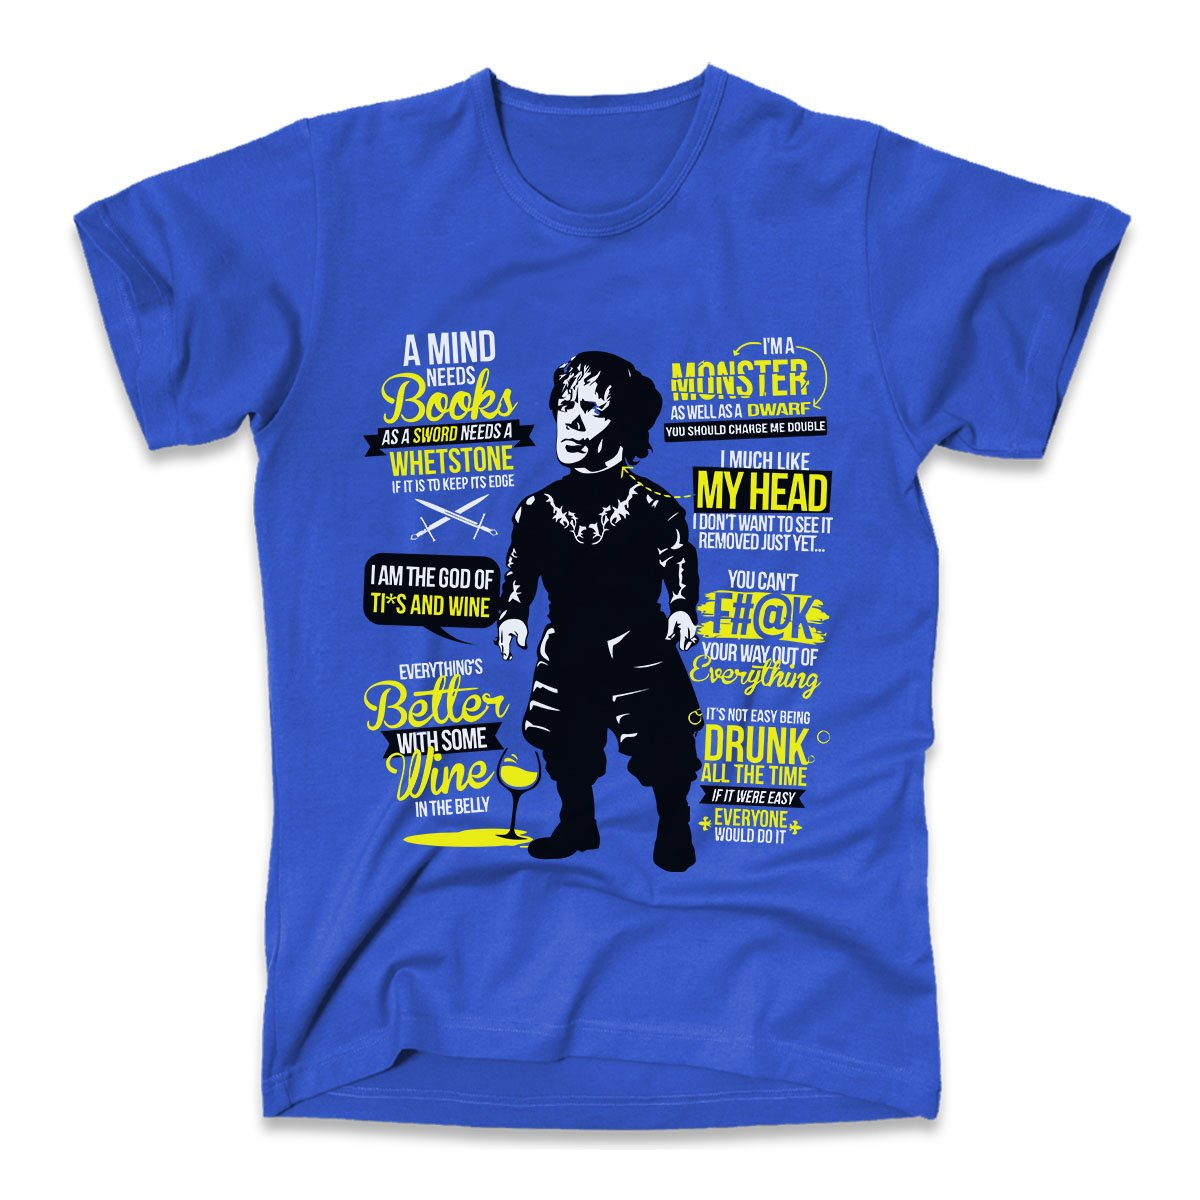 3316da966 Tyrion Lannister Famous Quotes The Game Of Thrones, Men's T-Shirt, Royal  Blue, XX-Large: Amazon.co.uk: Clothing